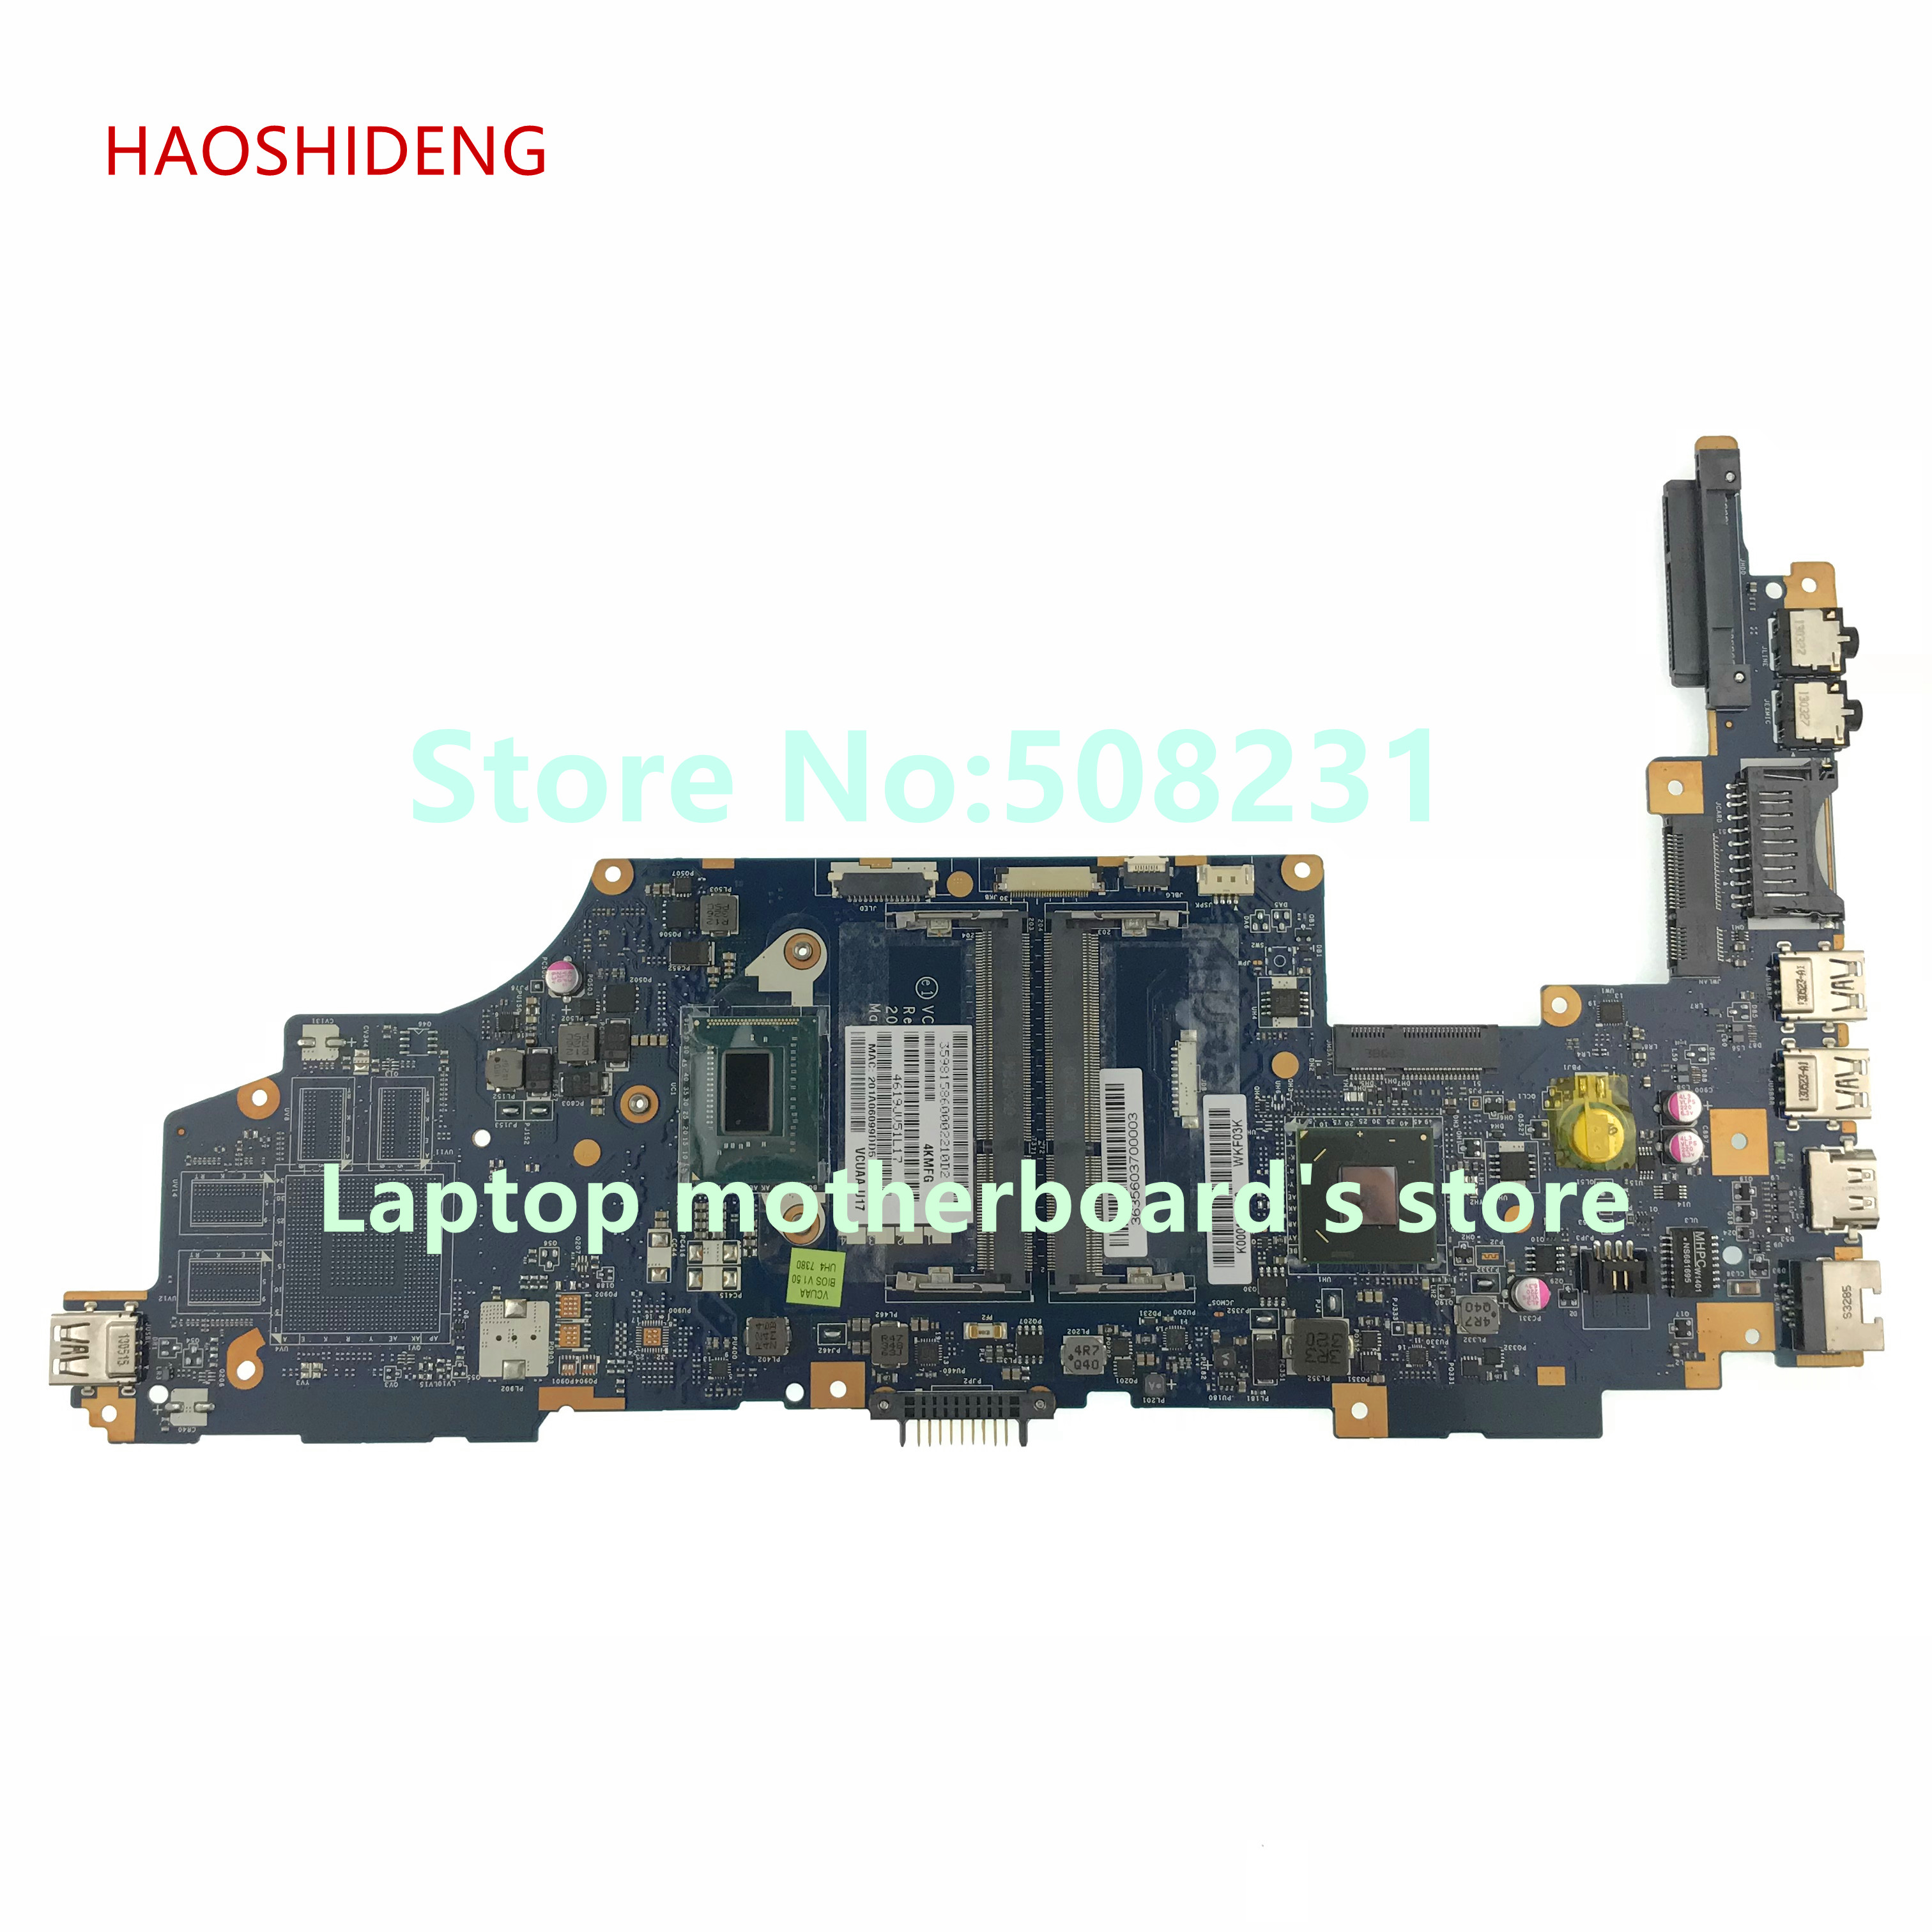 HAOSHIDENG K000141020 LA-9161P For Toshiba Satellite U940 U945-S4110 series laptop motherboard with SR0XF I3-3227U fully Tested nokoton mainboard nbm4911008 nb m4911 008 for acer aspire v5 571g laptop motherboard sr0xf i3 3227u tested